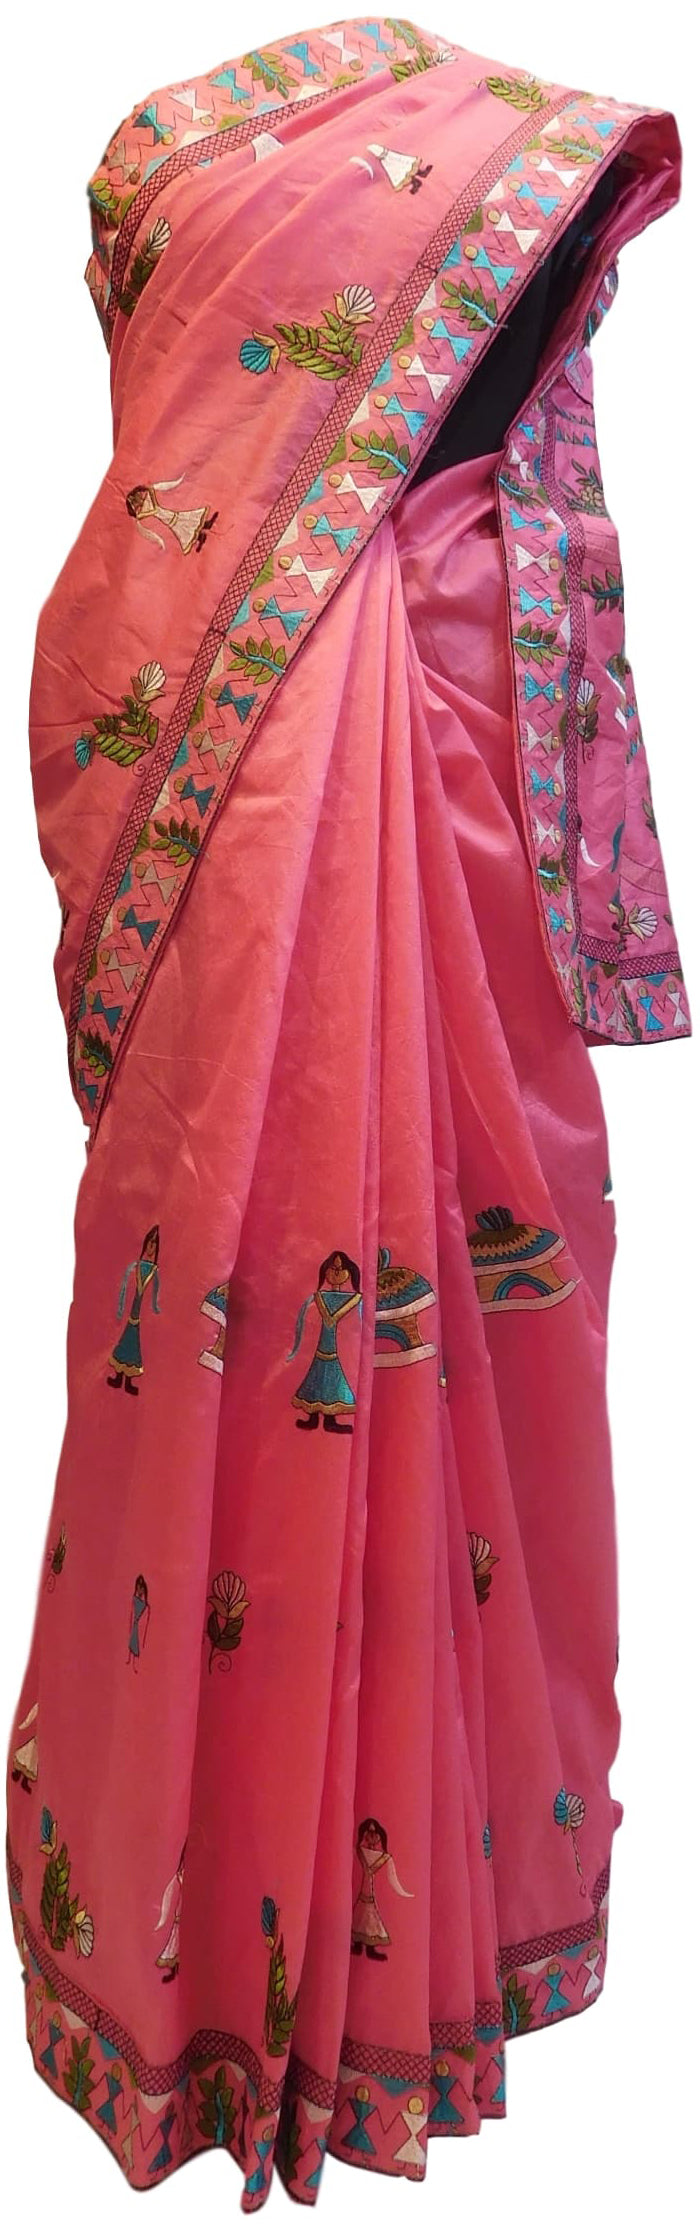 Pink Designer Silk Hand Embroidery Thread Zari Work Saree Sari